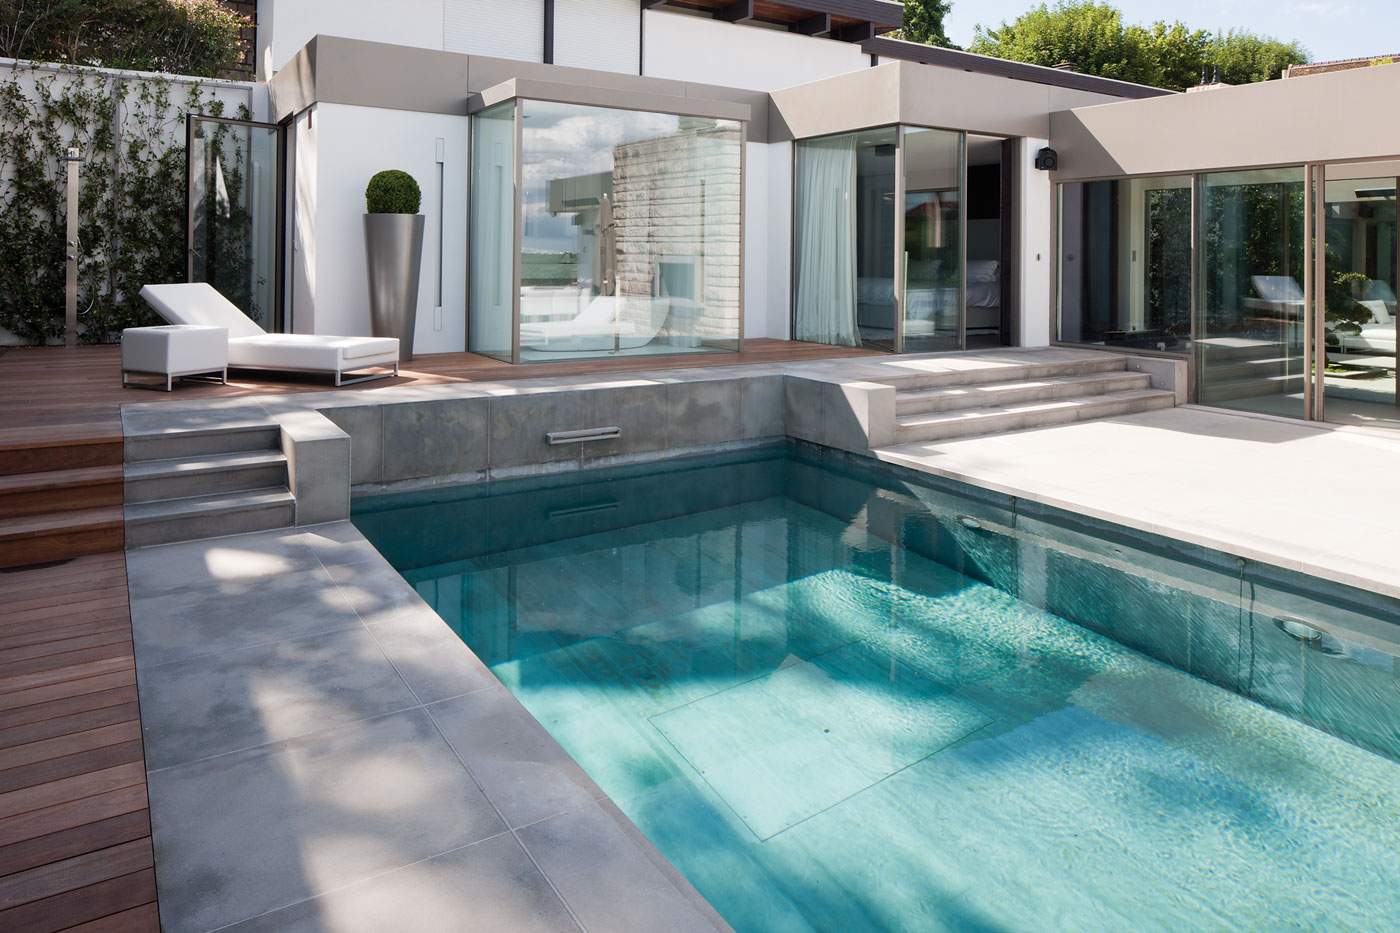 Weeeze : Producer Of Minimal Doors And Windows For ... à Piscine St Vulbas